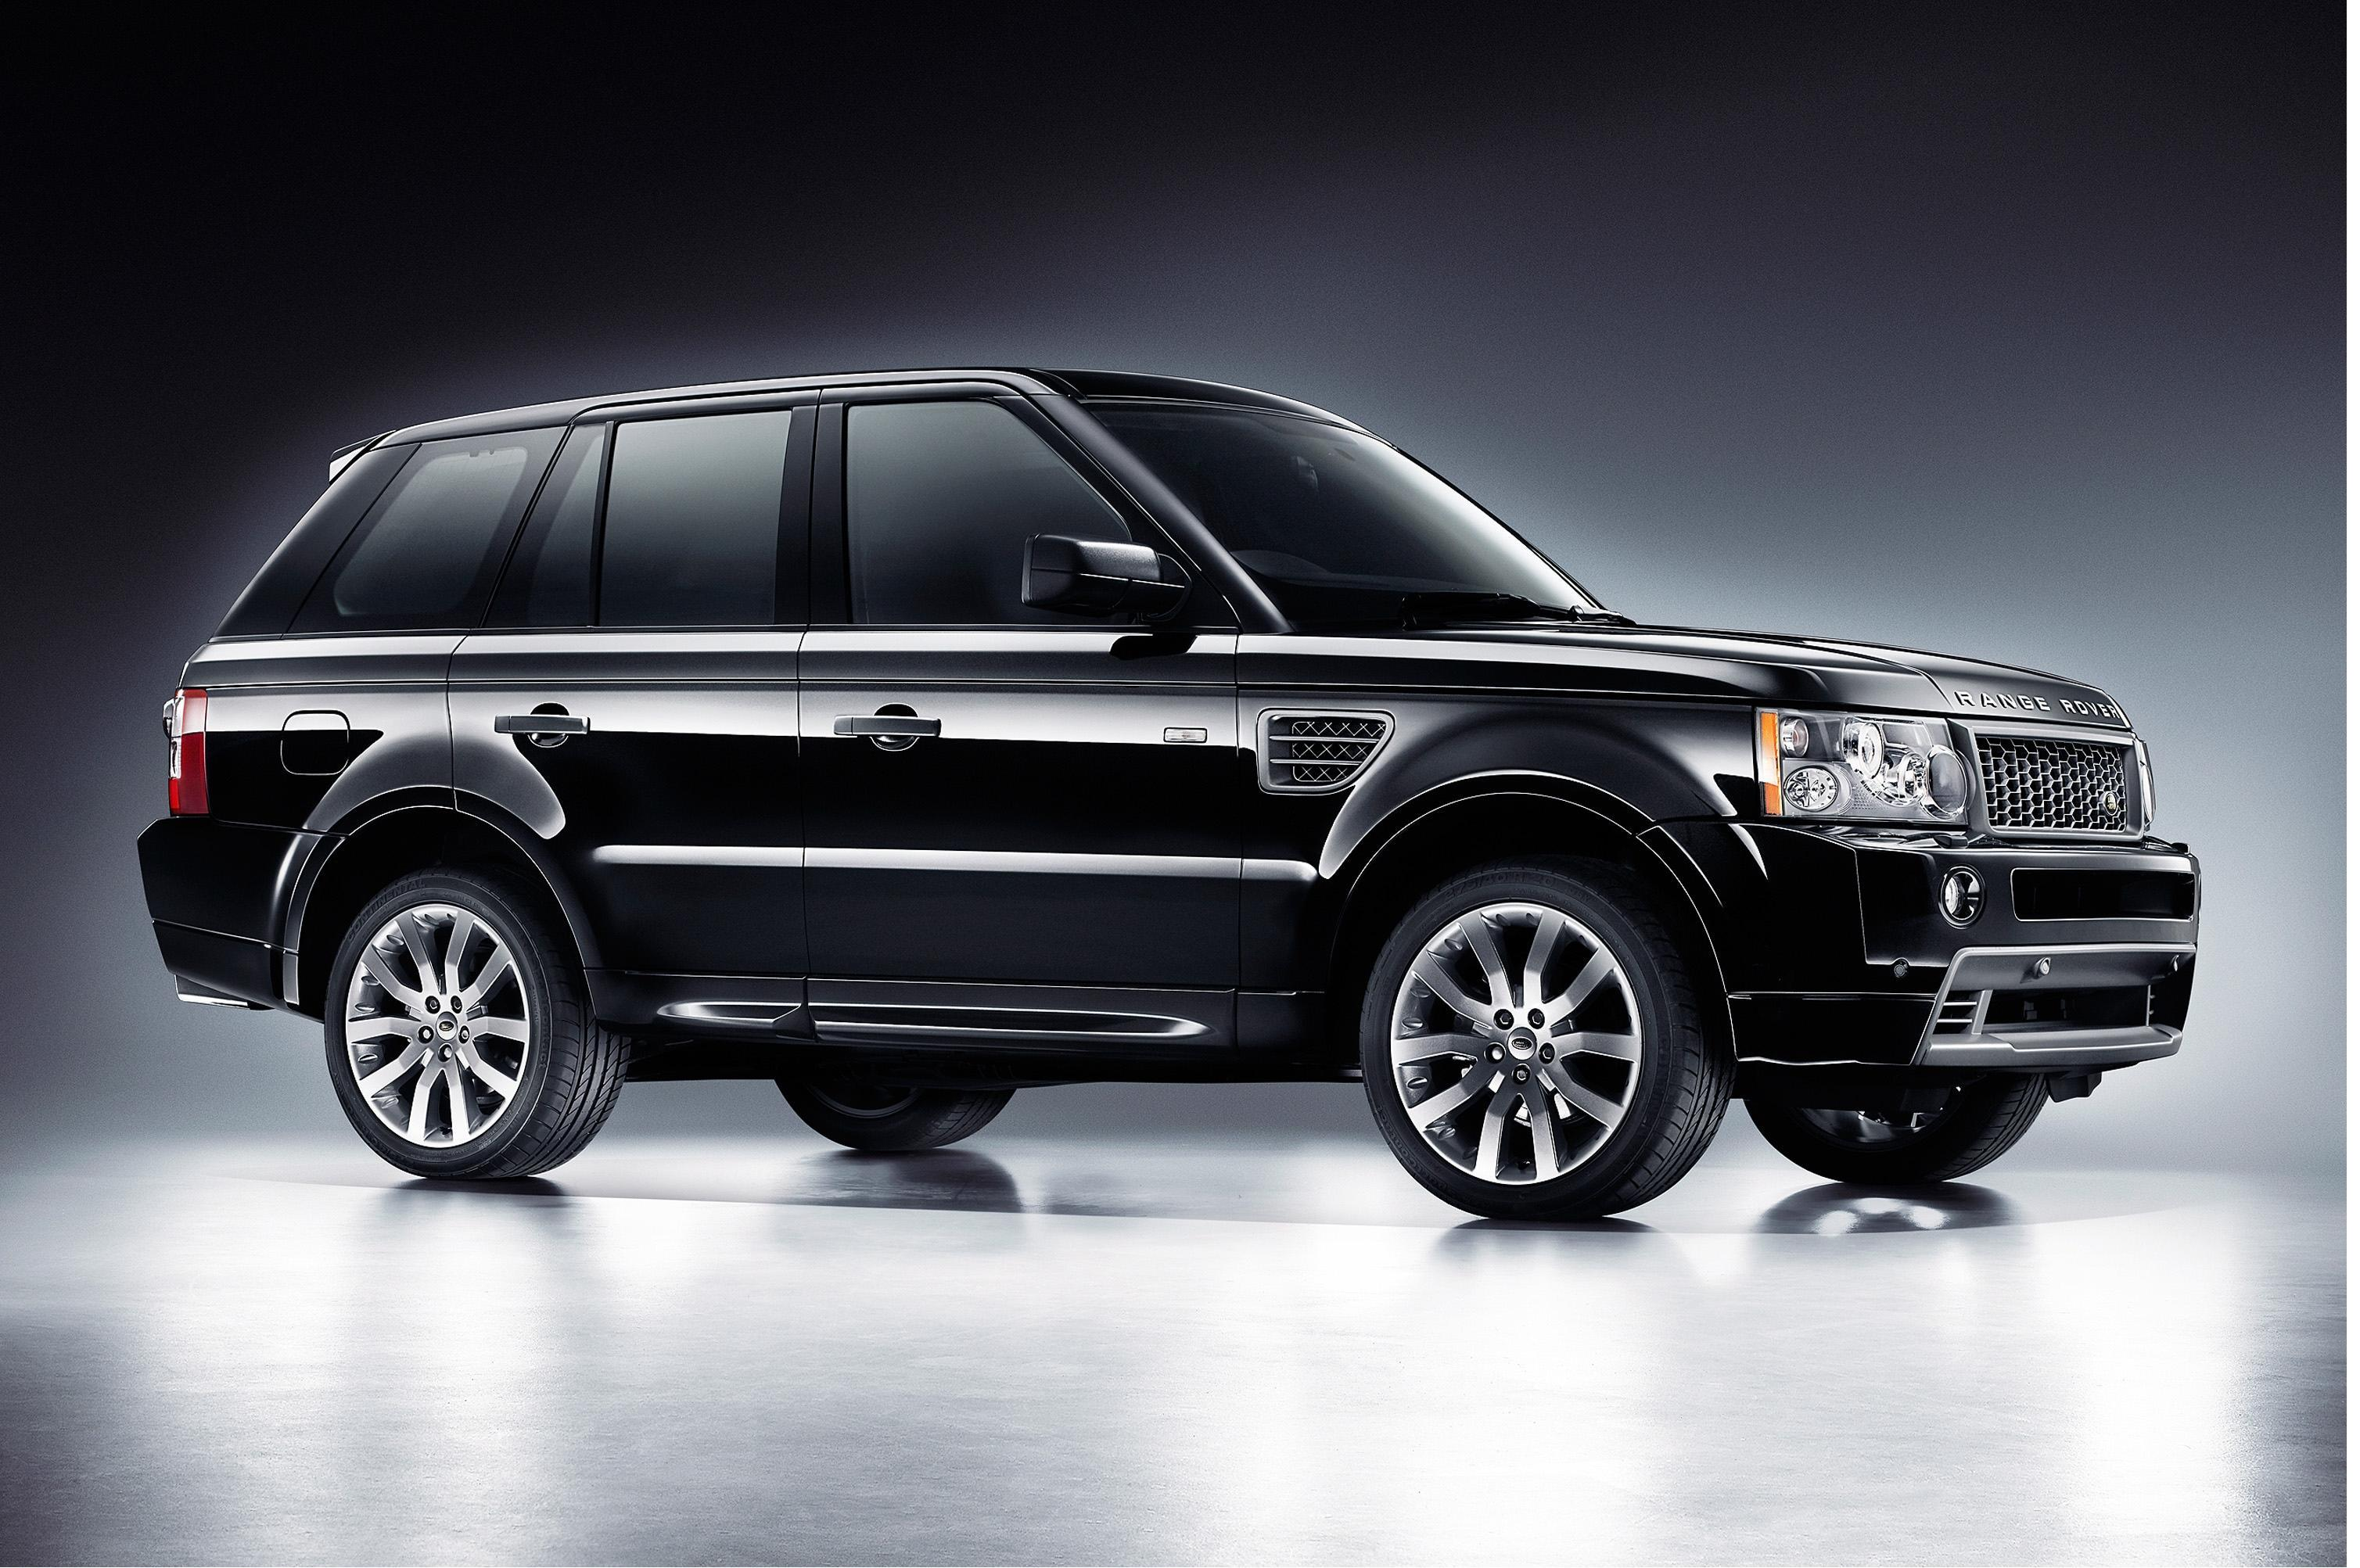 Land Rover Range Sport Reviews Specs Prices Photos And 2007 Supercharged Firing Order With Diagrams Images 2009 Stormer Edition